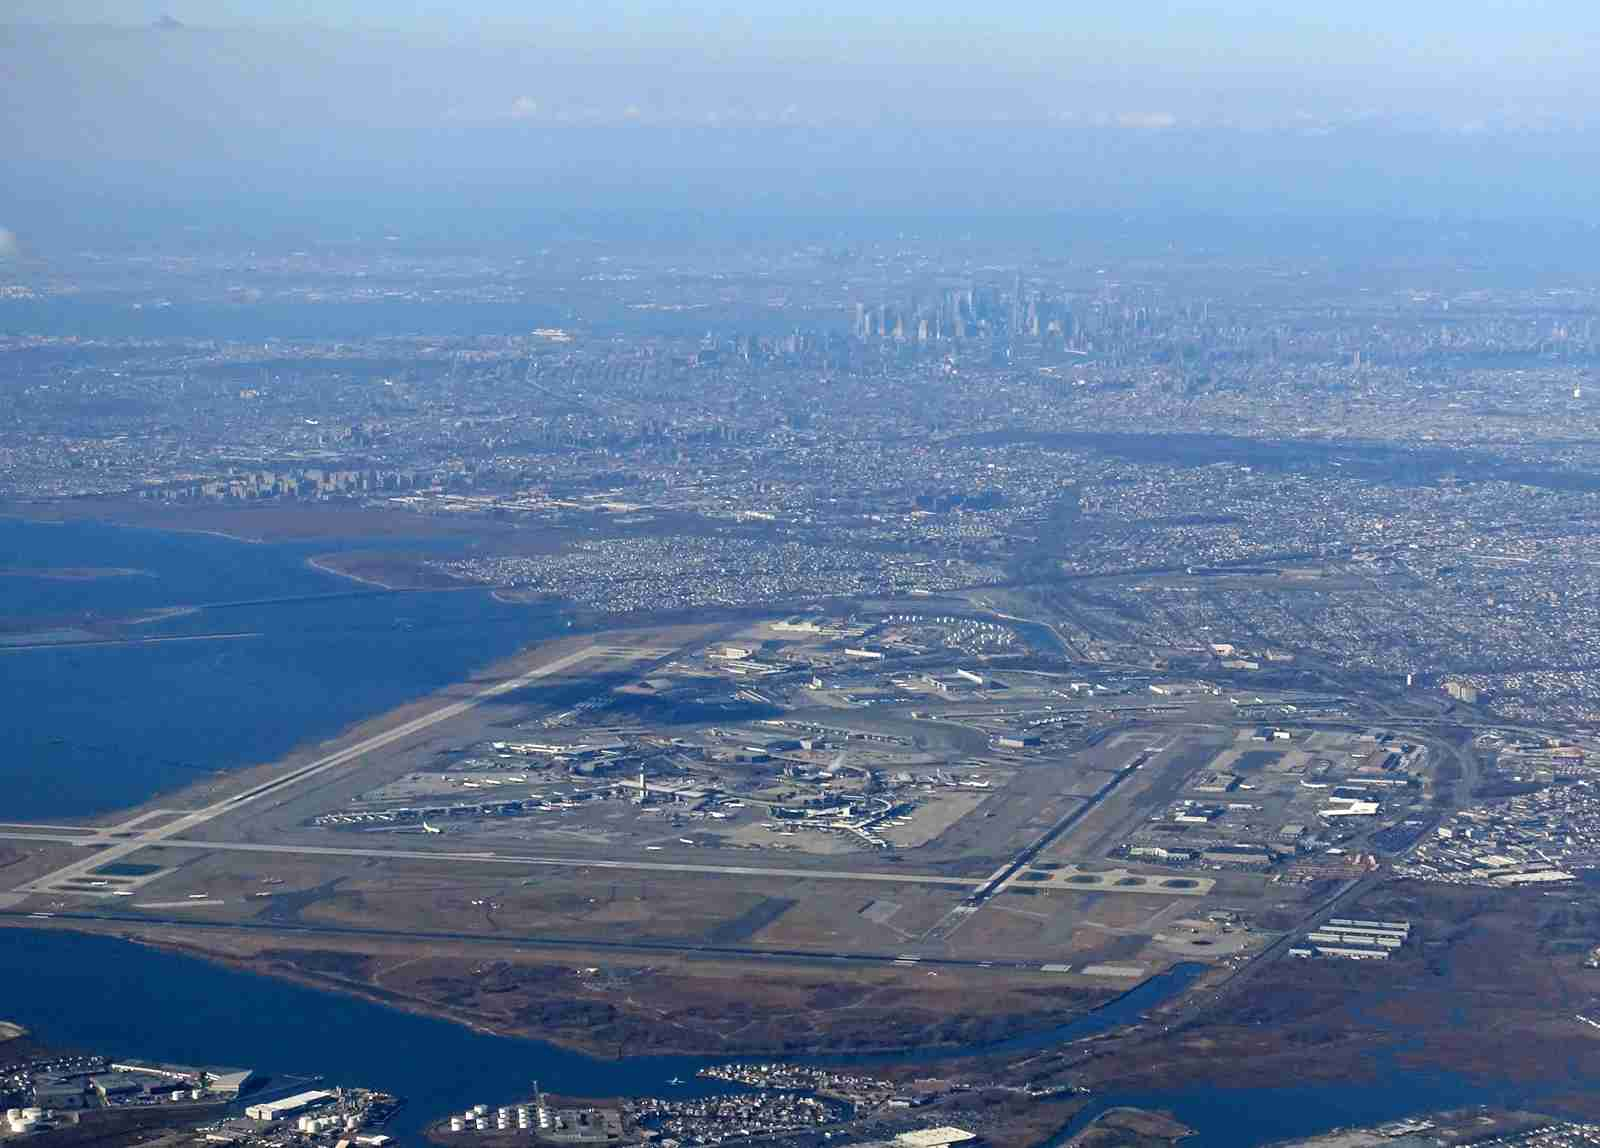 JFK airport and New York City from the air in December 2018 (Photo by Alberto Riva/TPG)